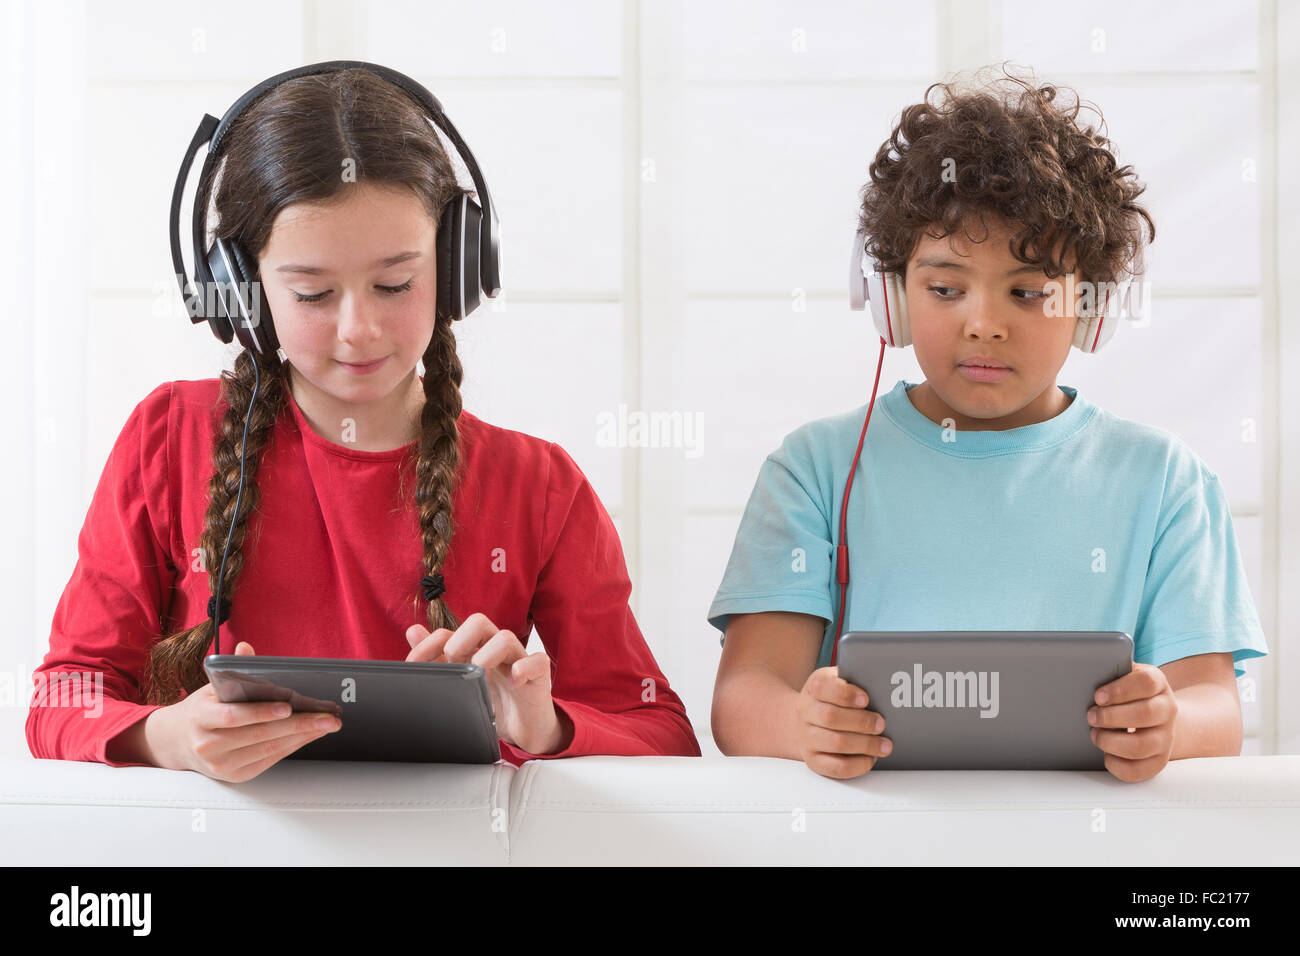 CHILD WITH TABLET - Stock Image